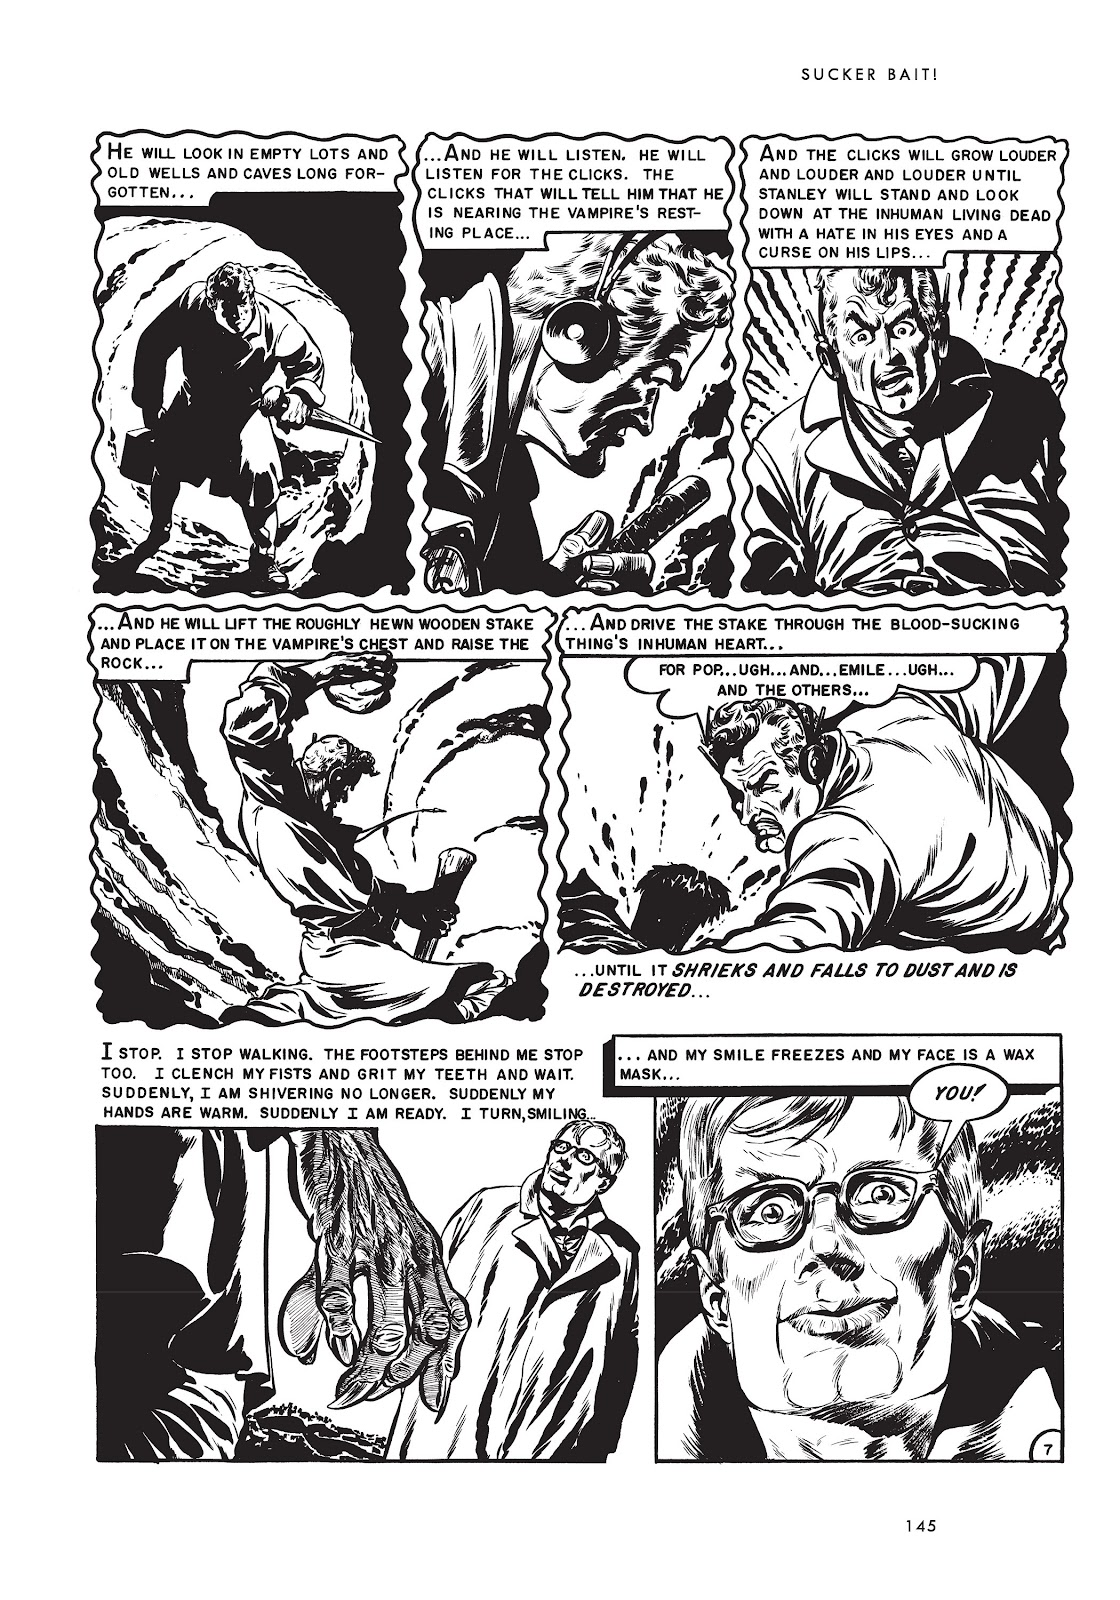 Read online Sucker Bait and Other Stories comic -  Issue # TPB (Part 2) - 60